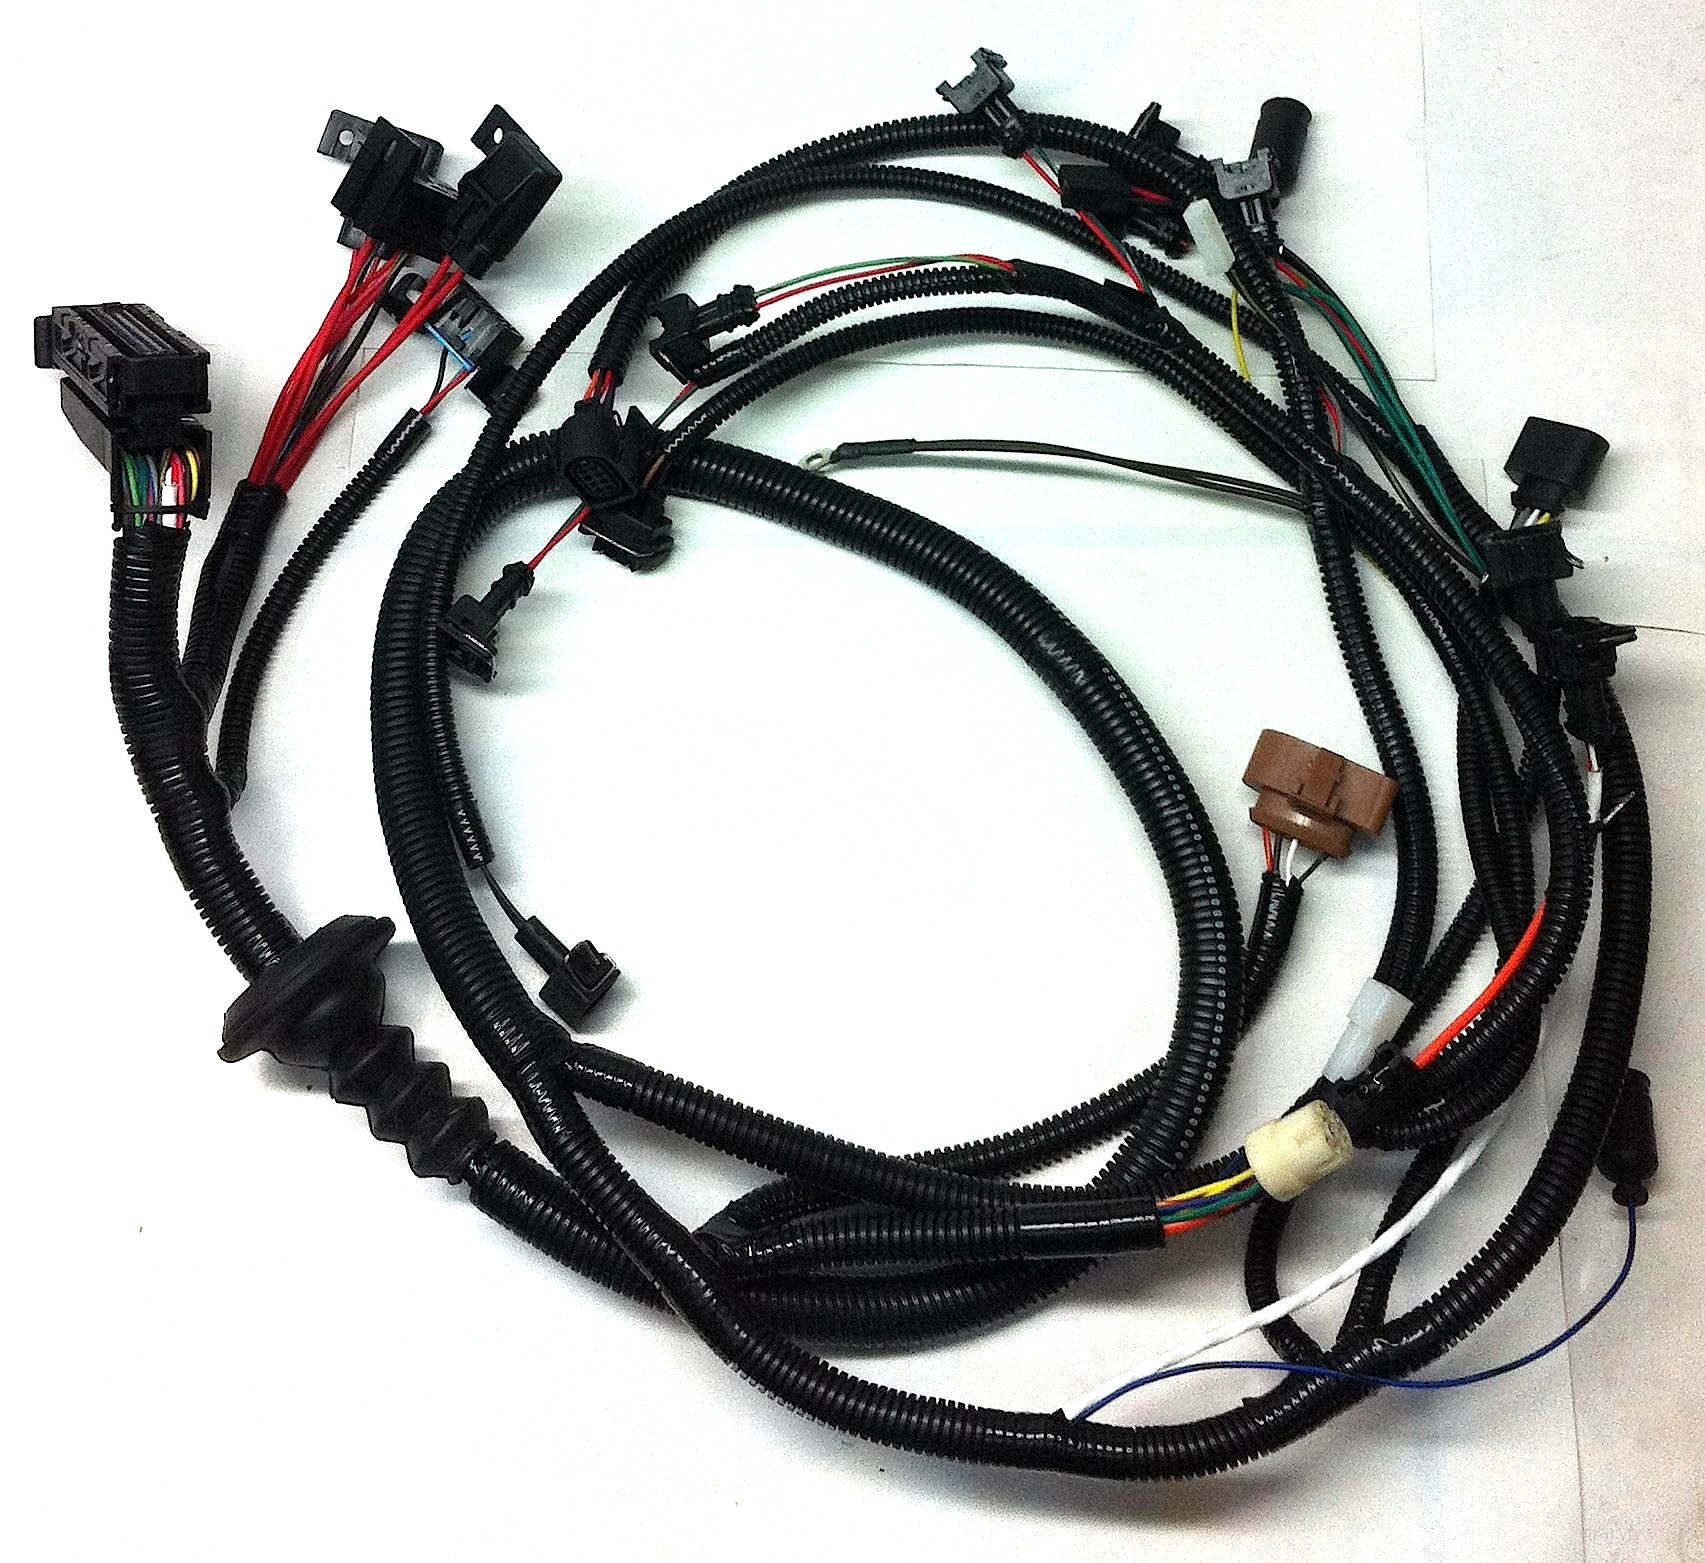 wiring help d16y5 into dx hatch. - honda-tech - honda ... subaru engine wiring harness diagram di engine wiring harness